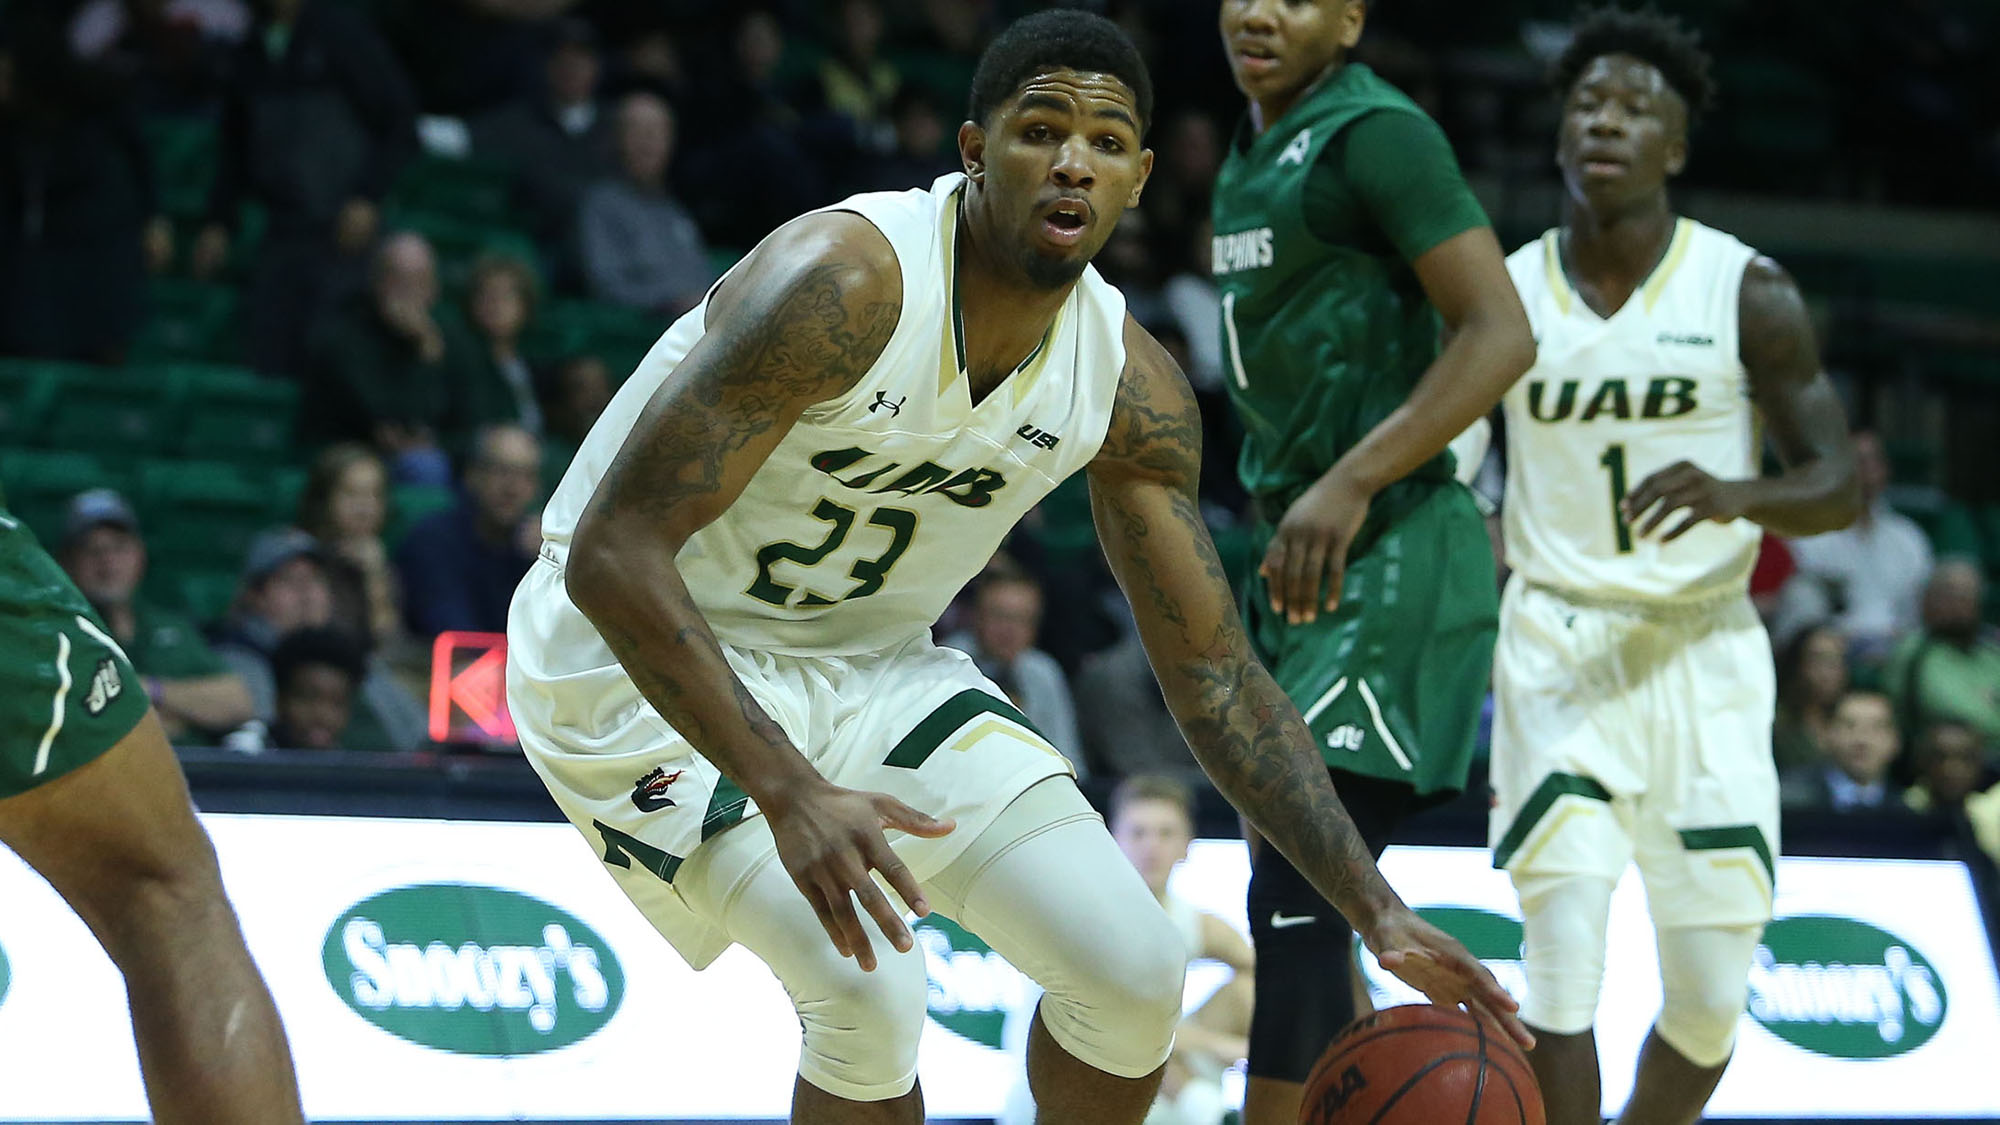 uab men's basketball introduces mini plans for 2018-19 season